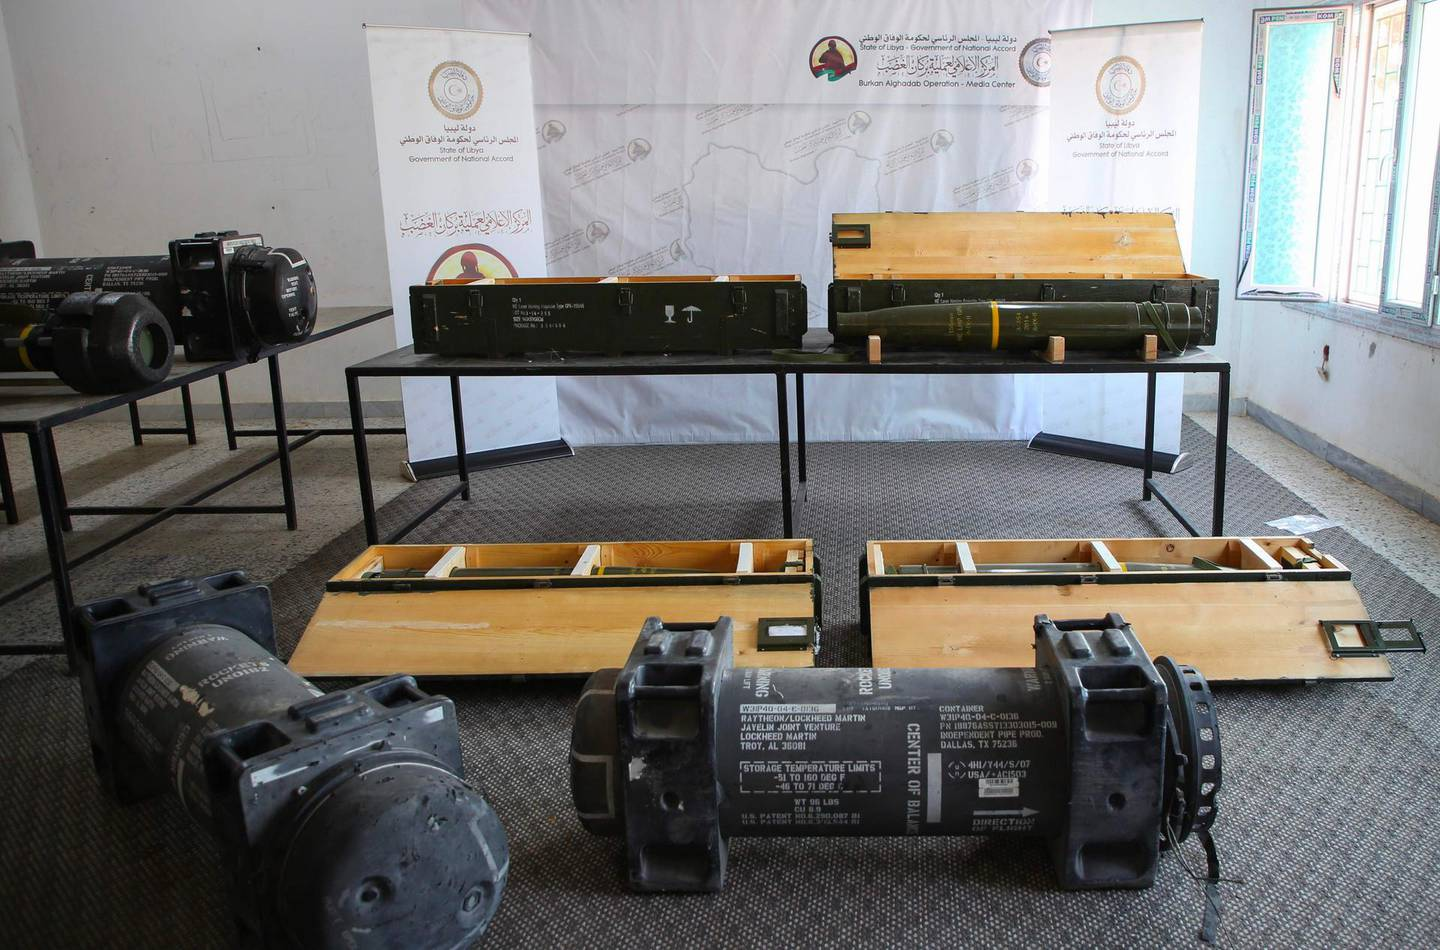 A picture taken in Tripoli on June 29, 2019, shows fighters loyal to the internationally-recognised Libyan Government of National Accord (GNA) displaying US-made Javelin anti-tank missile and precision guided munition, which were reportedly confiscated from forces loyal to General Khalifa Haftar in Gharyan. The United States said it was looking into a report that American anti-tank missiles were found by forces loyal to Libya's unity government at a captured rebel base. The missiles were apparently discovered earlier this week when forces loyal to the Government of National Accord recaptured the strategic town of Gharyan in a surprise attack, seizing the main supply base for Haftar's Tripoli offensive. / AFP / -